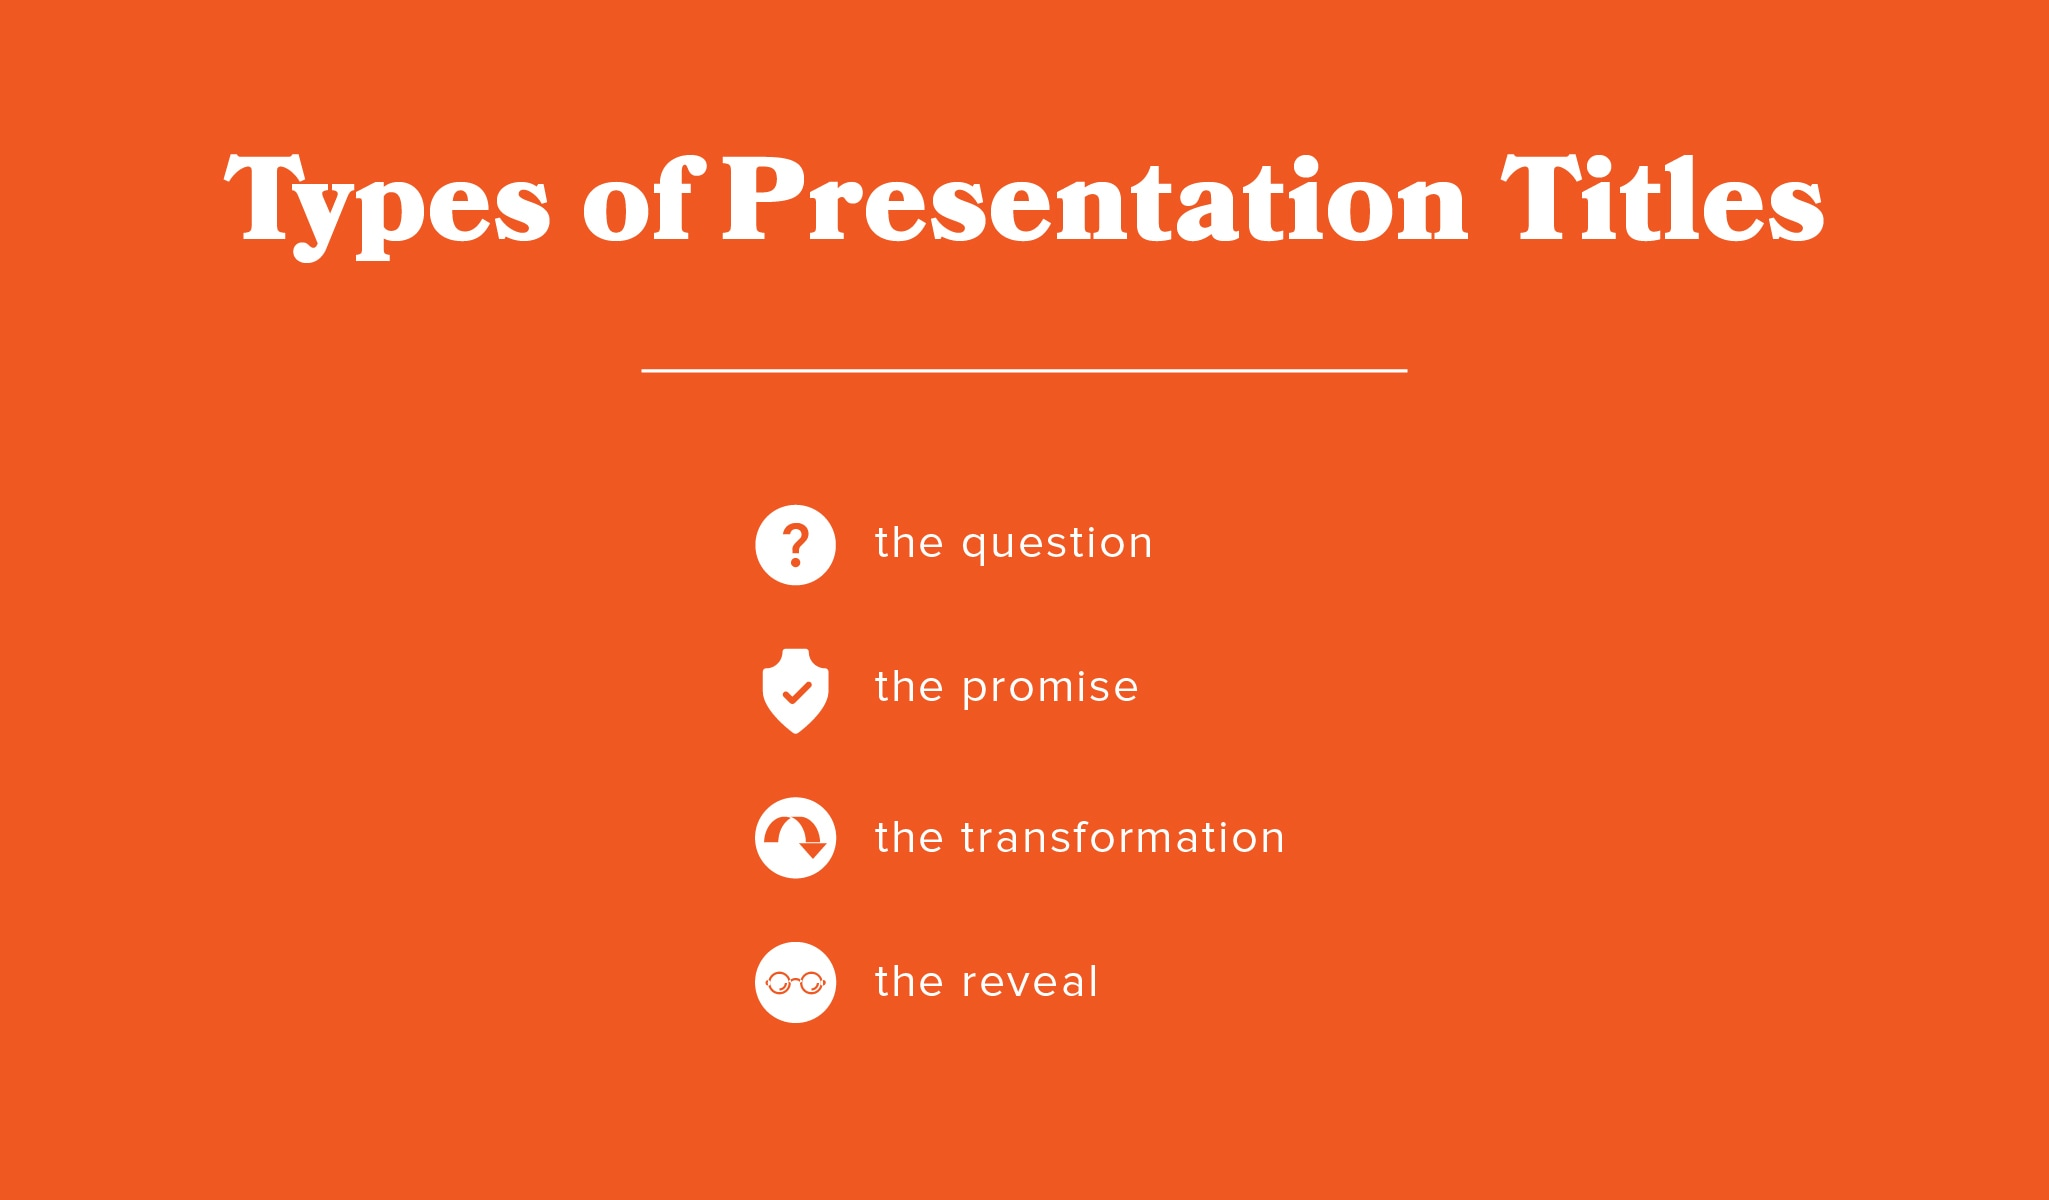 Types of Presentation Titles